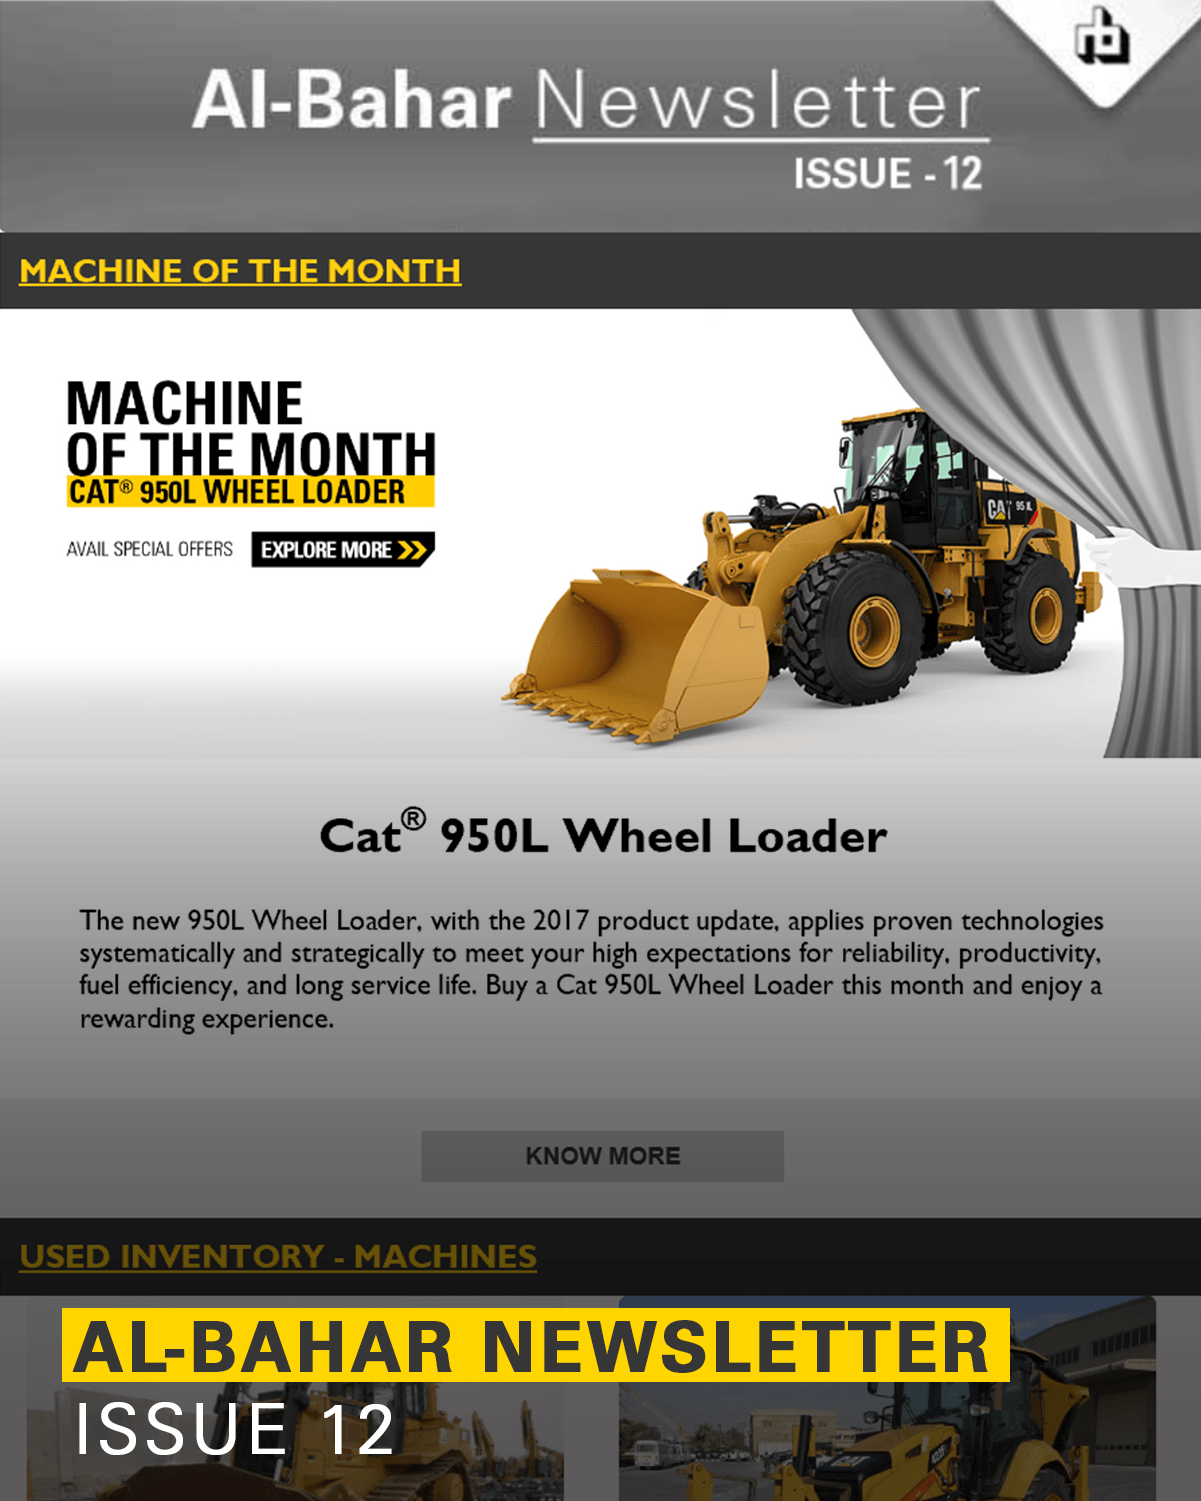 al-bahar-2018-newsletter-issue-12